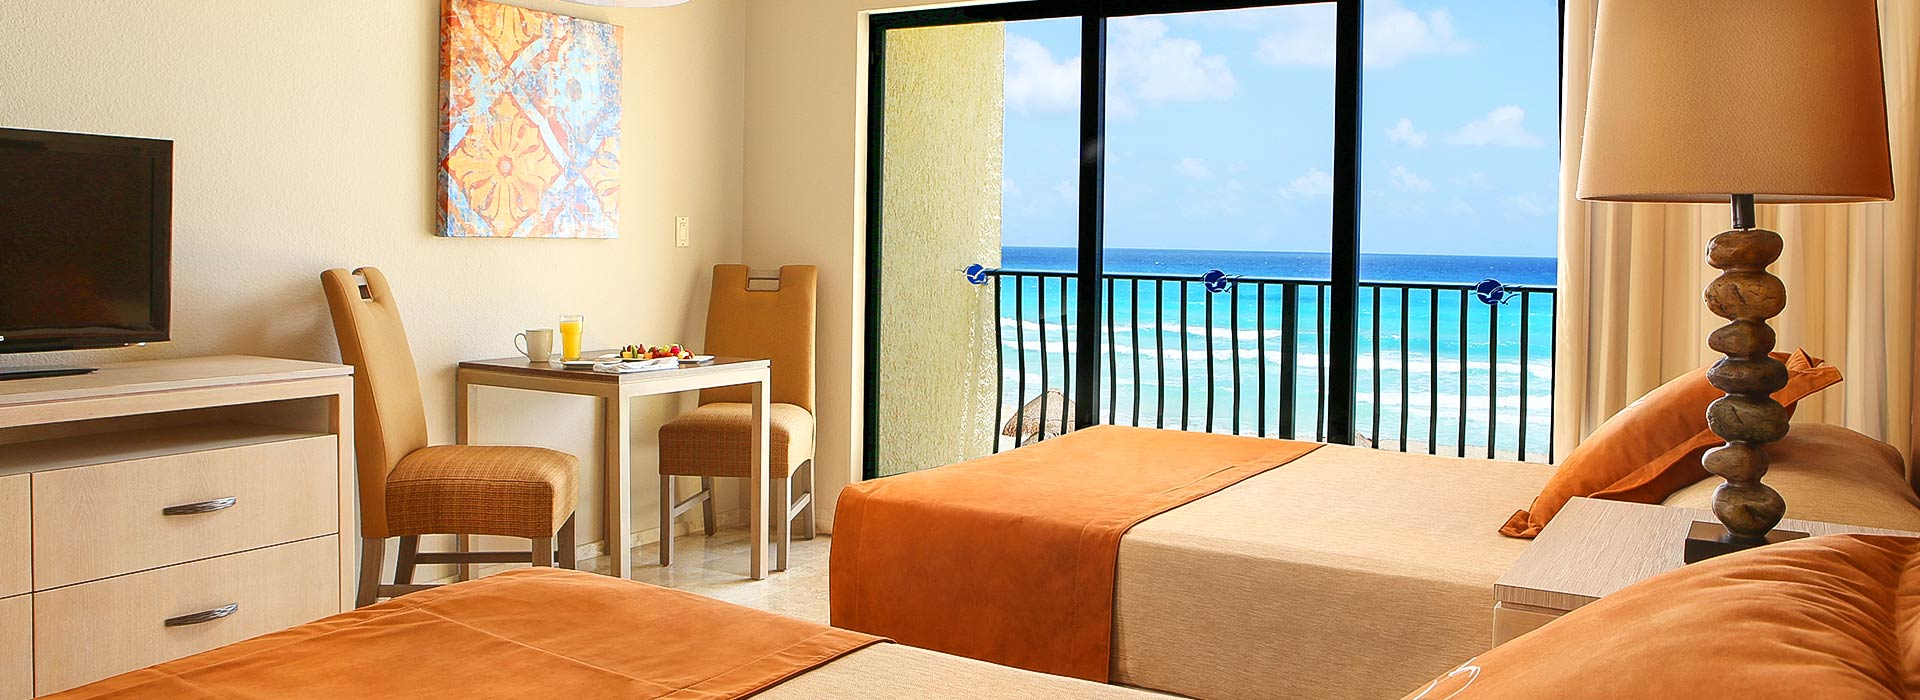 Ocean view villas with two bedroom suites and two double beds in The Royal Sands All Inclusive